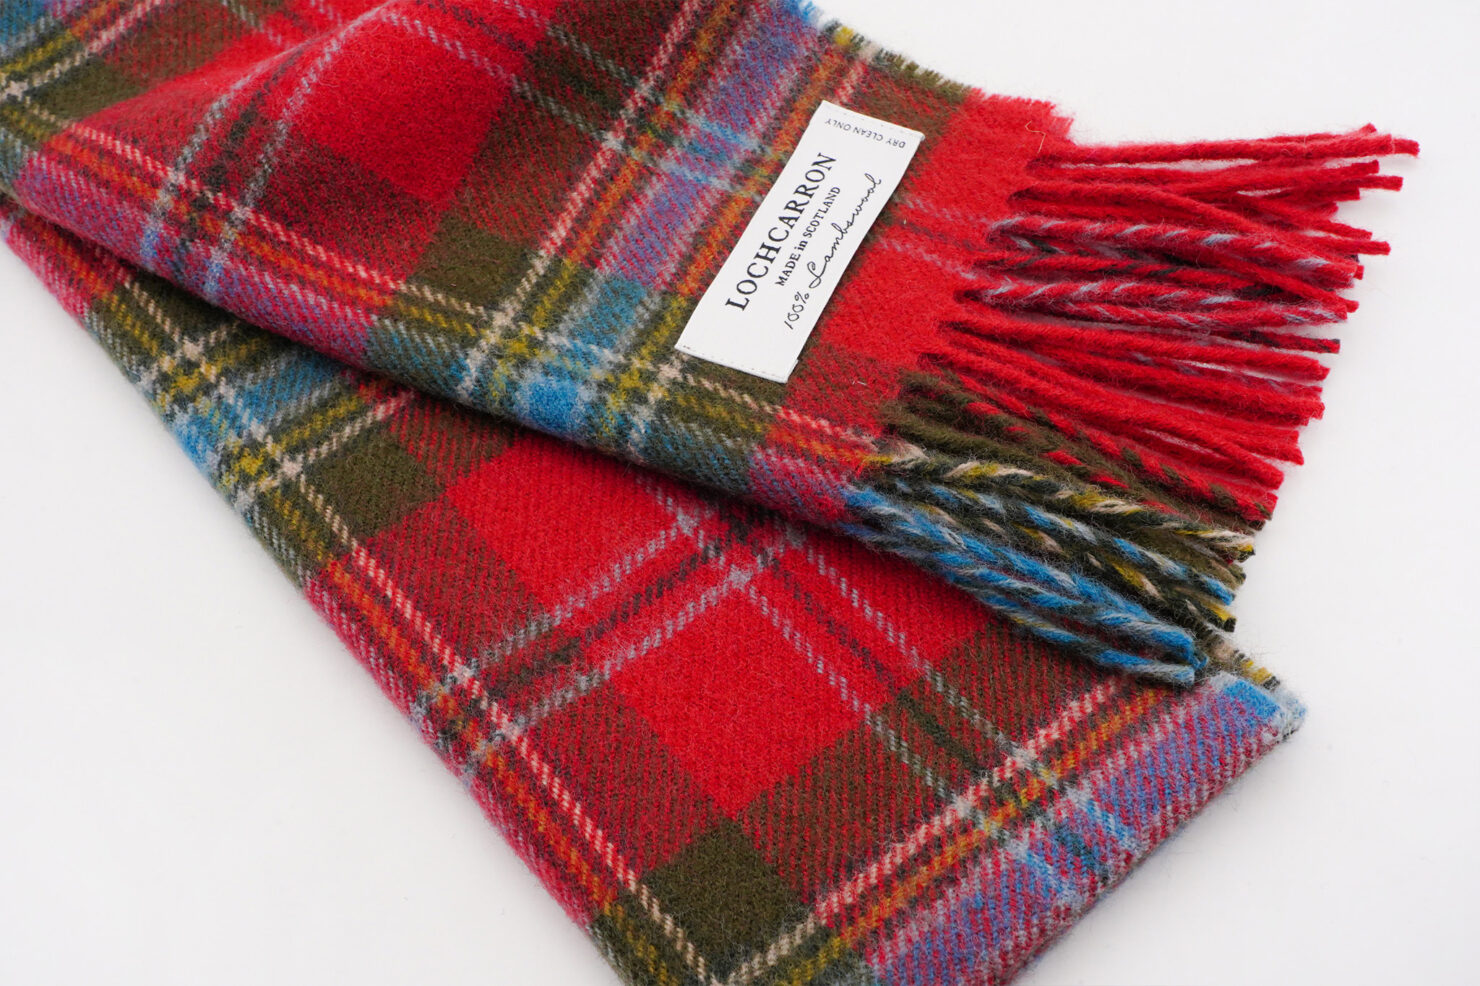 BRUSHWOOL LONG MACLEAN OF DUART SCARF - LOCHCARRON OF SCOTLAND